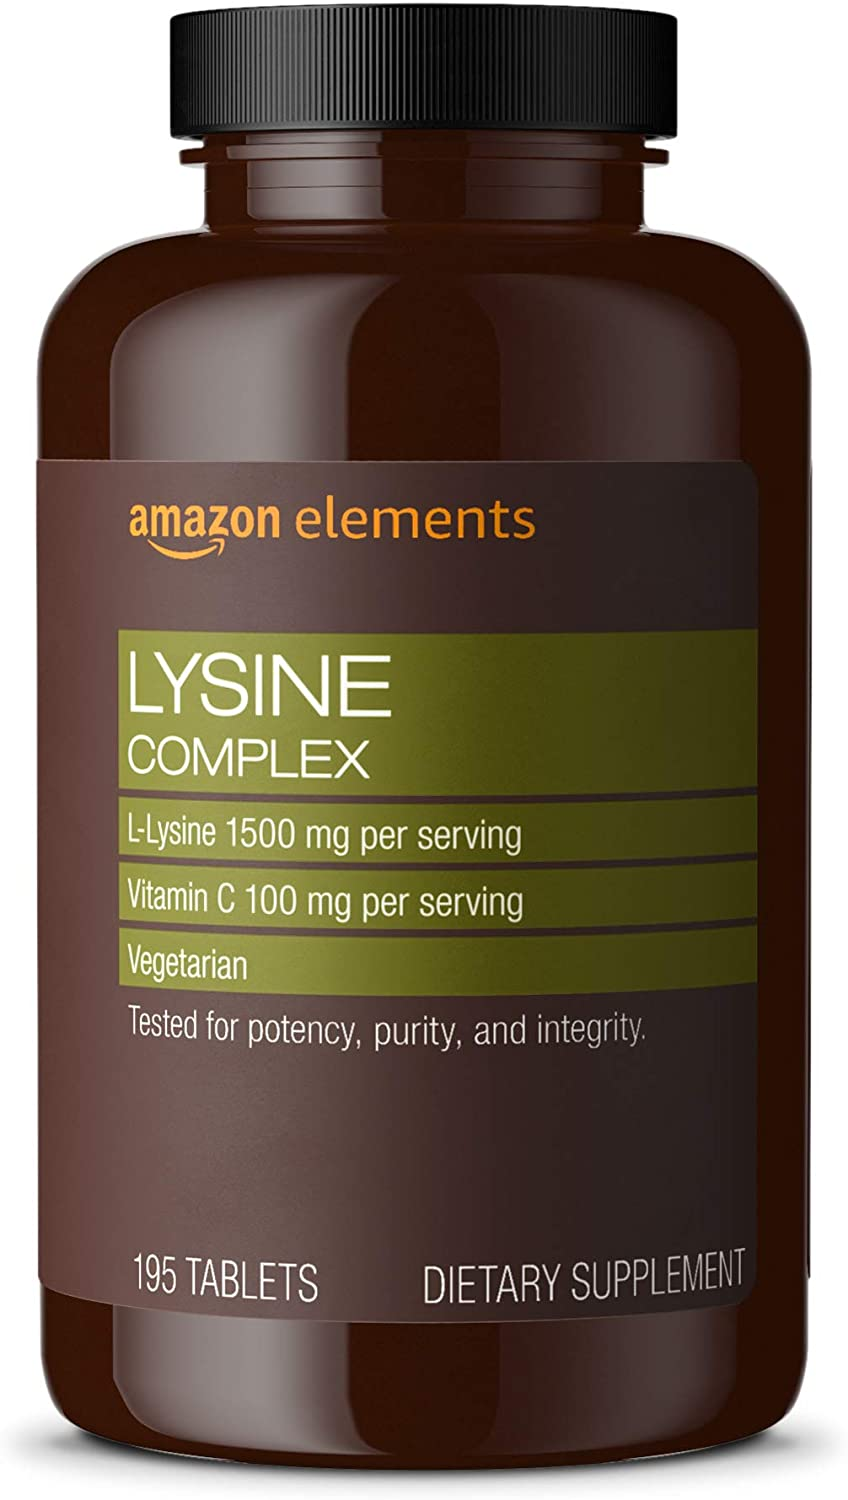 DHgate Elements Lysine Complex with Vitamin C, 1500 mg L-Lysine with 100 mg Vitamin C per Serving (3 Tablets), Supports Immune Health, Vegetarian, 195 Tablets (Packaging may vary)